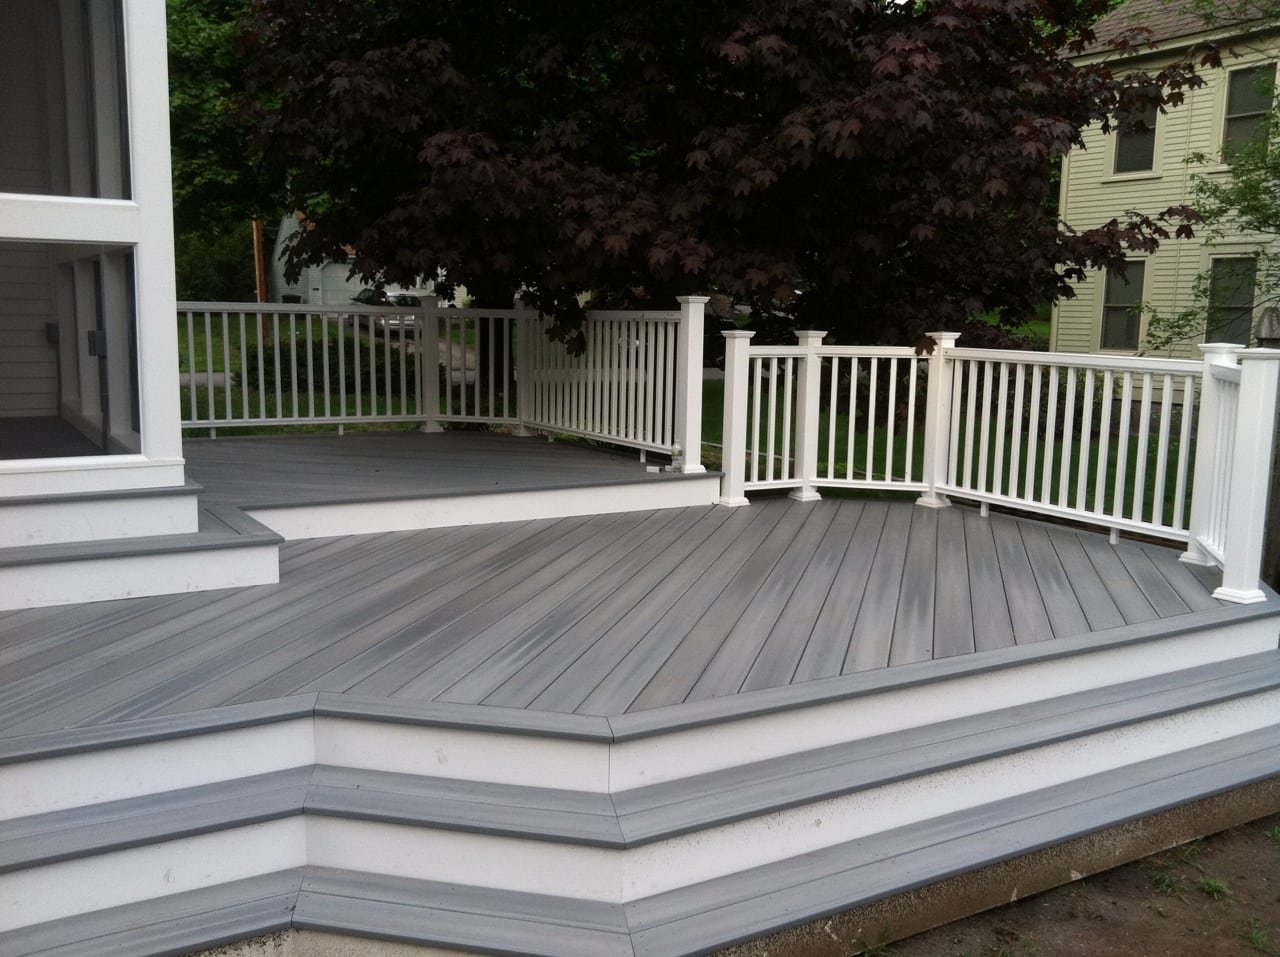 Flora Brothers - How to Clean and Care For Your Composite Deck